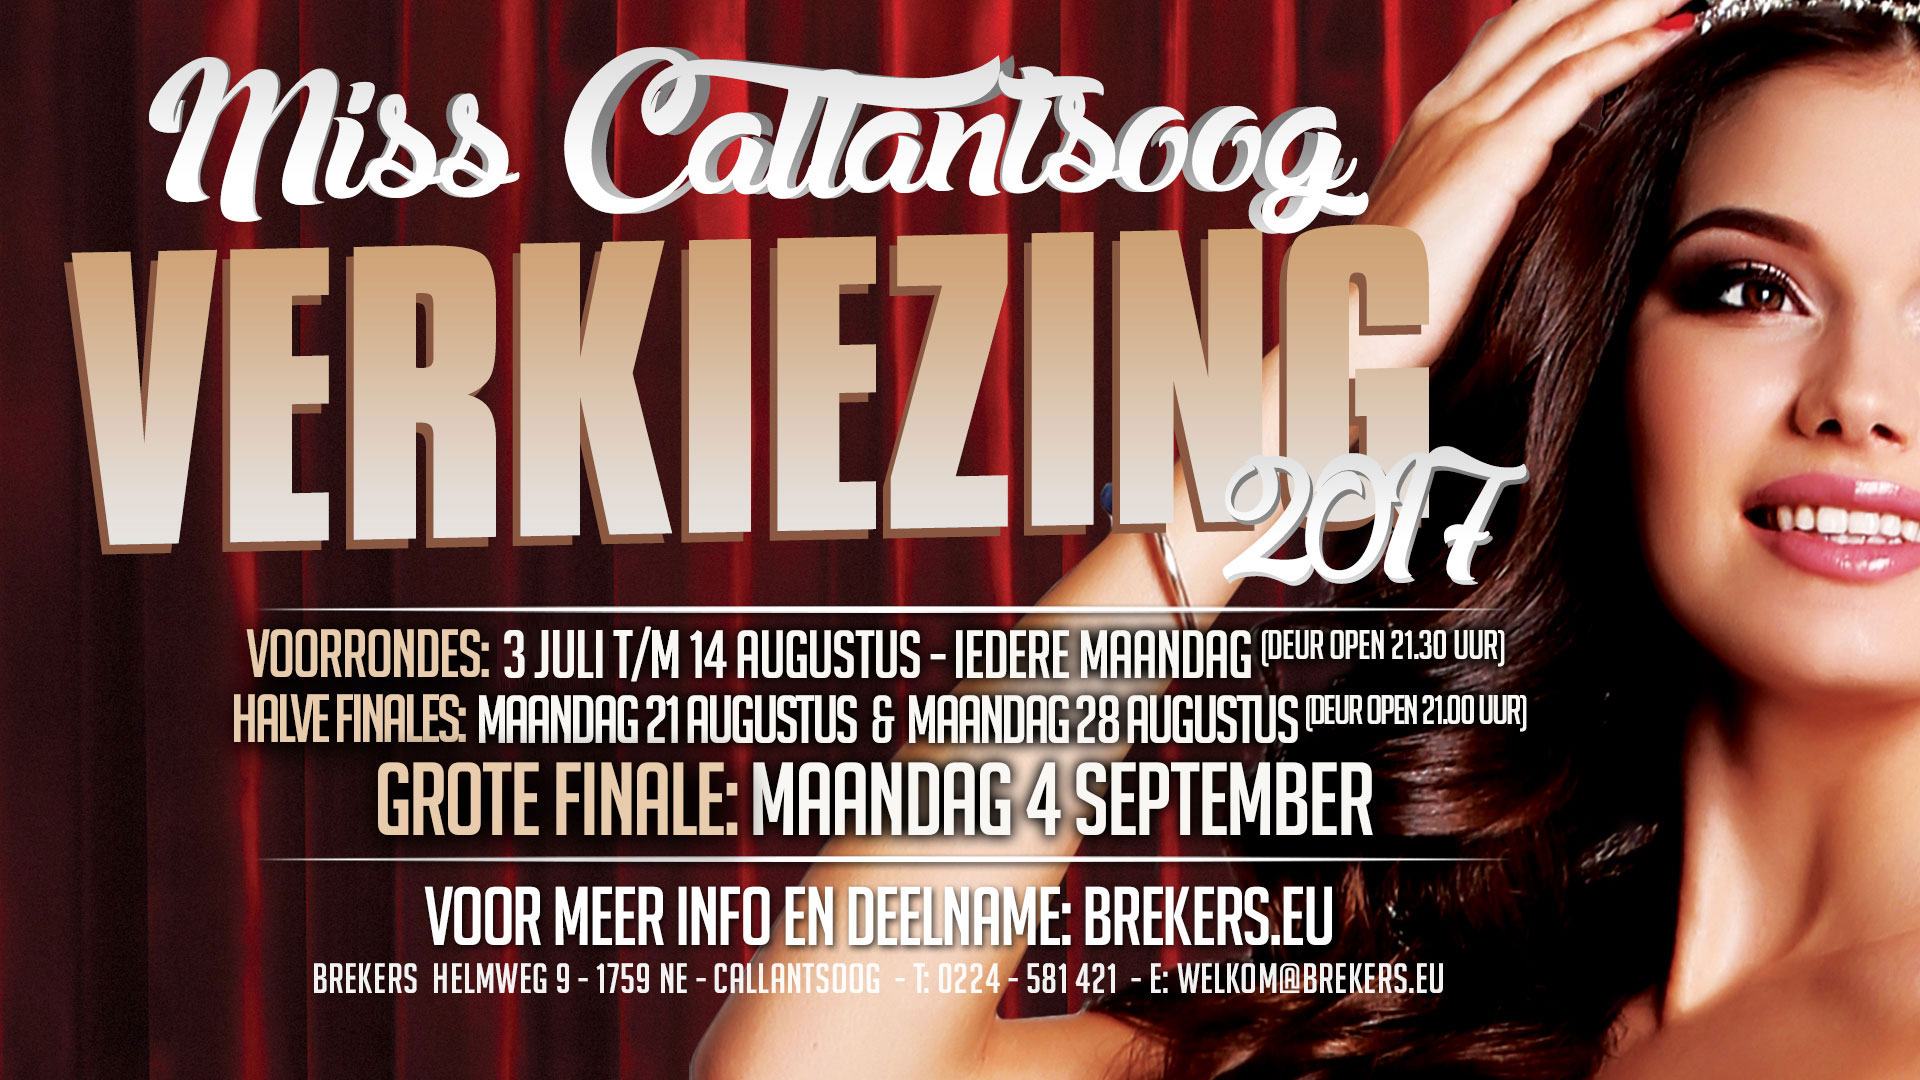 Miss Callantsoog Verkiezing